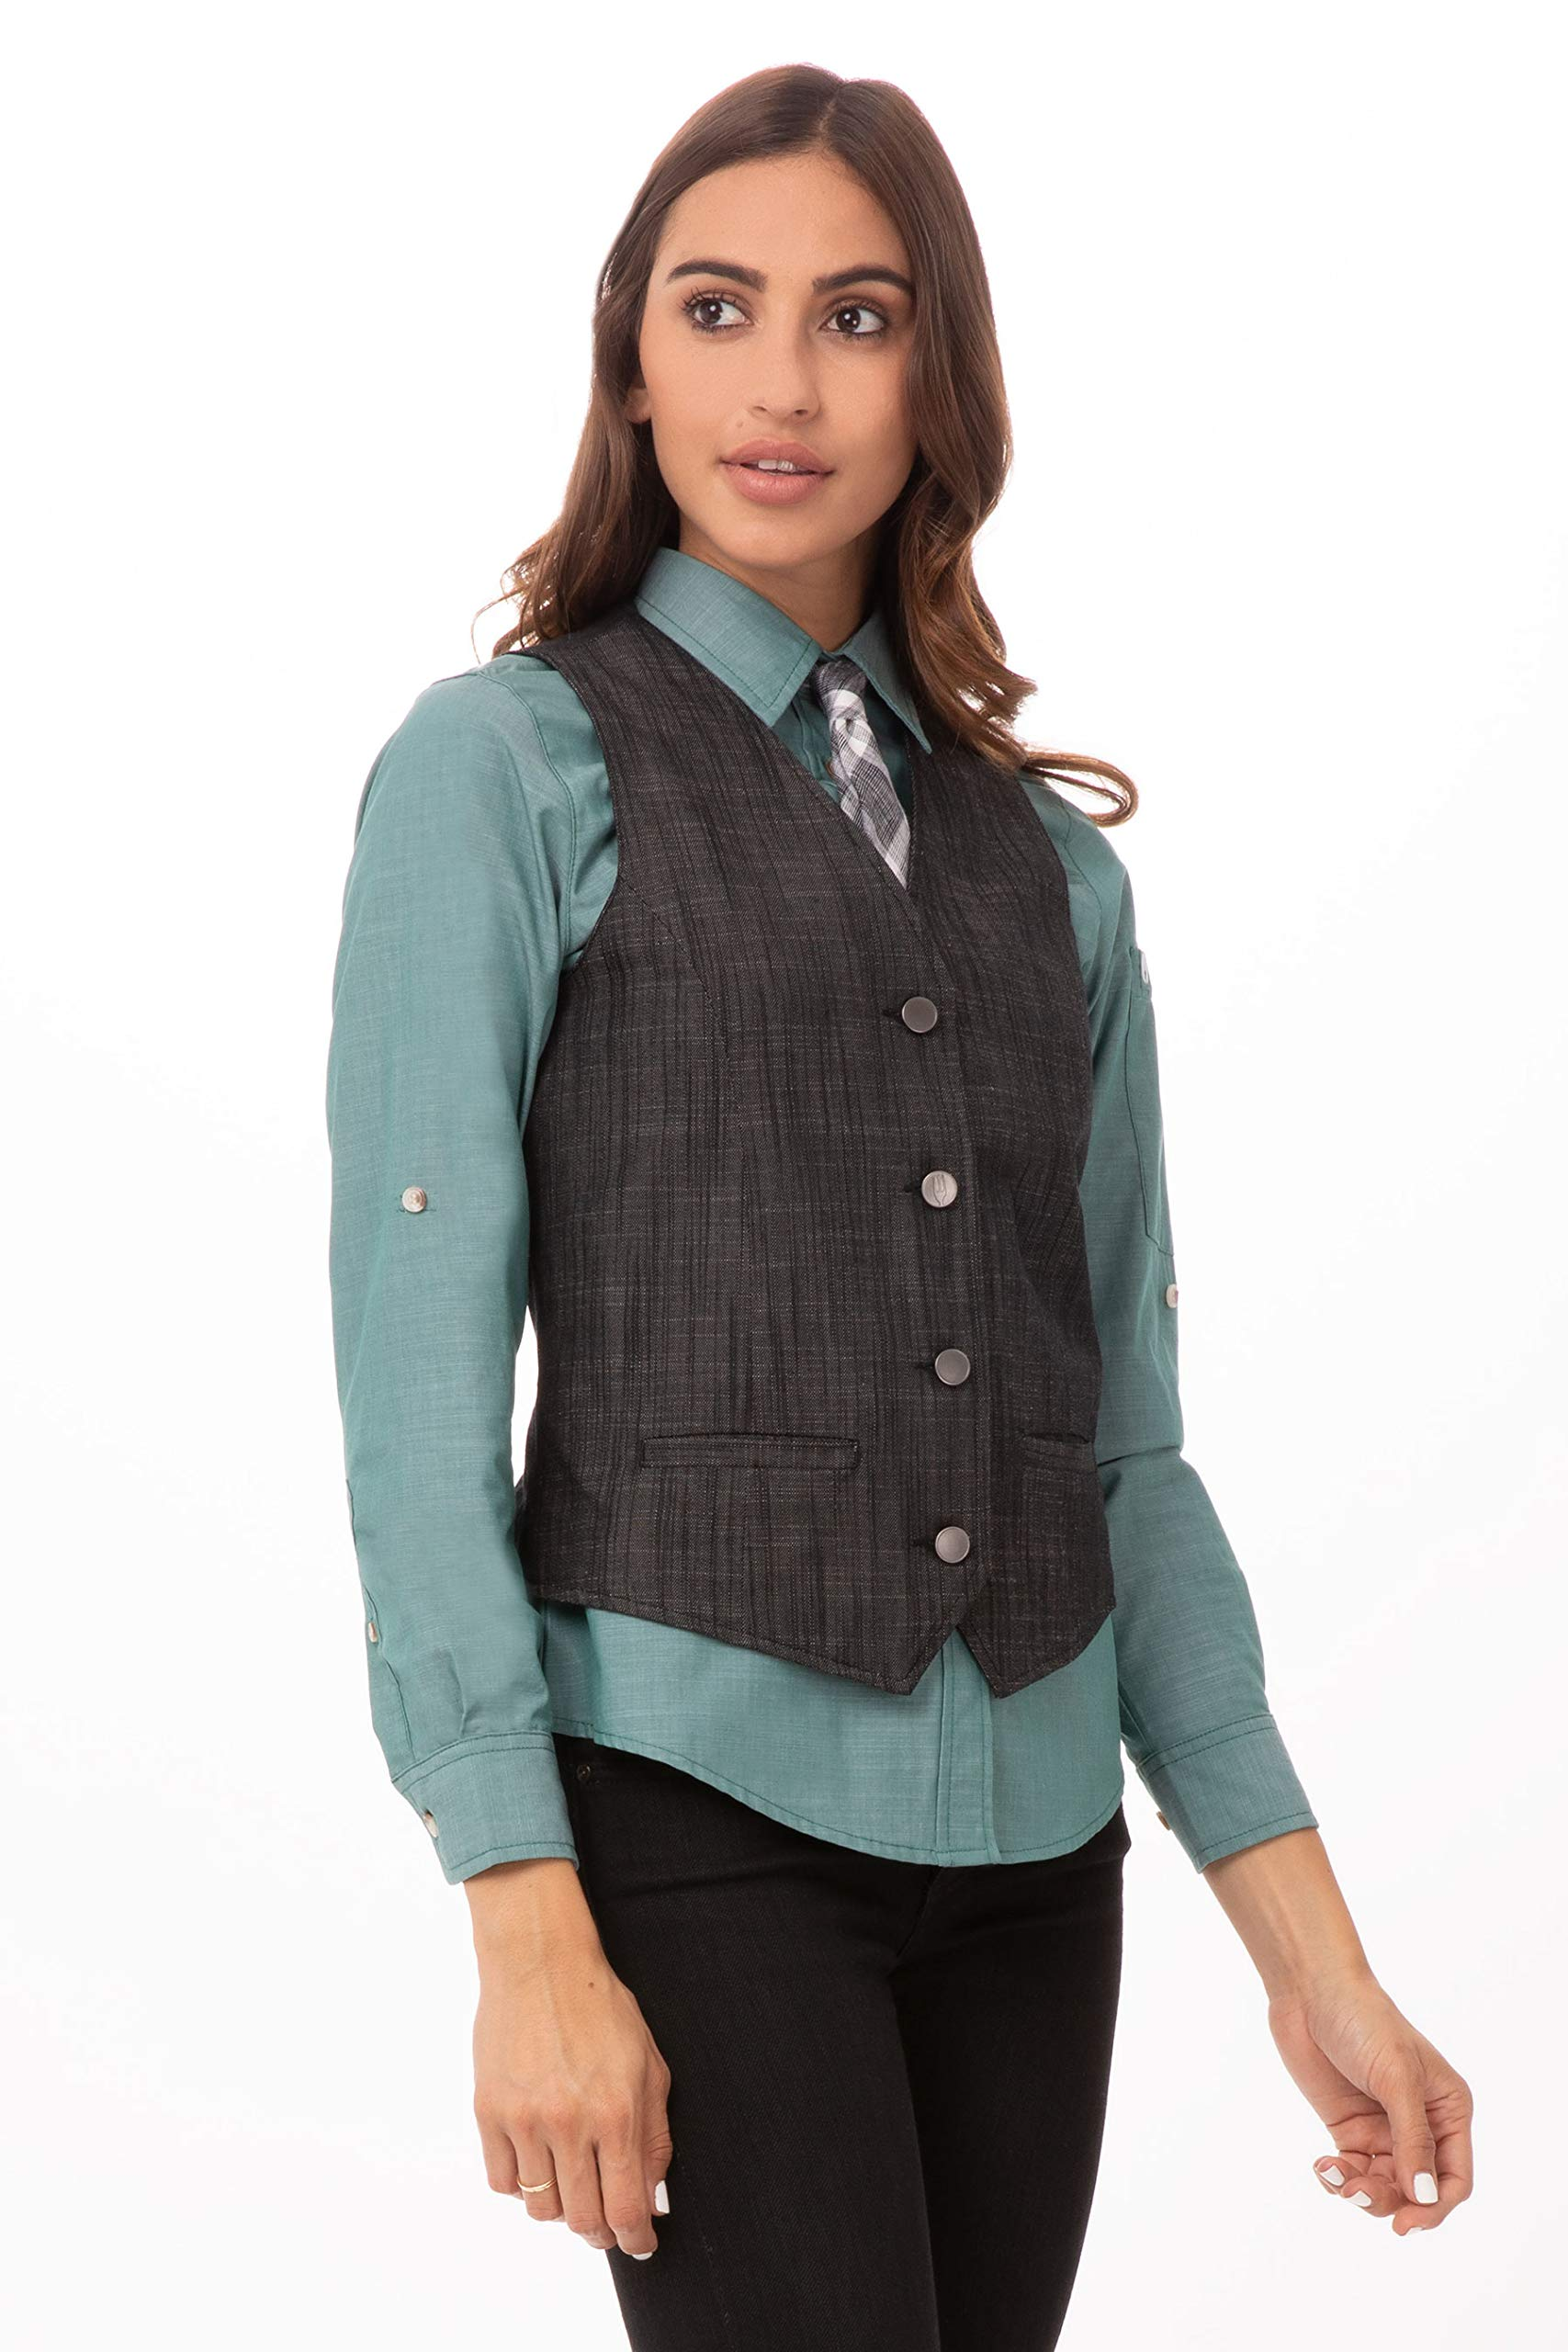 Chef Works Women's Augustine Vest, Black, Large by Chef Works